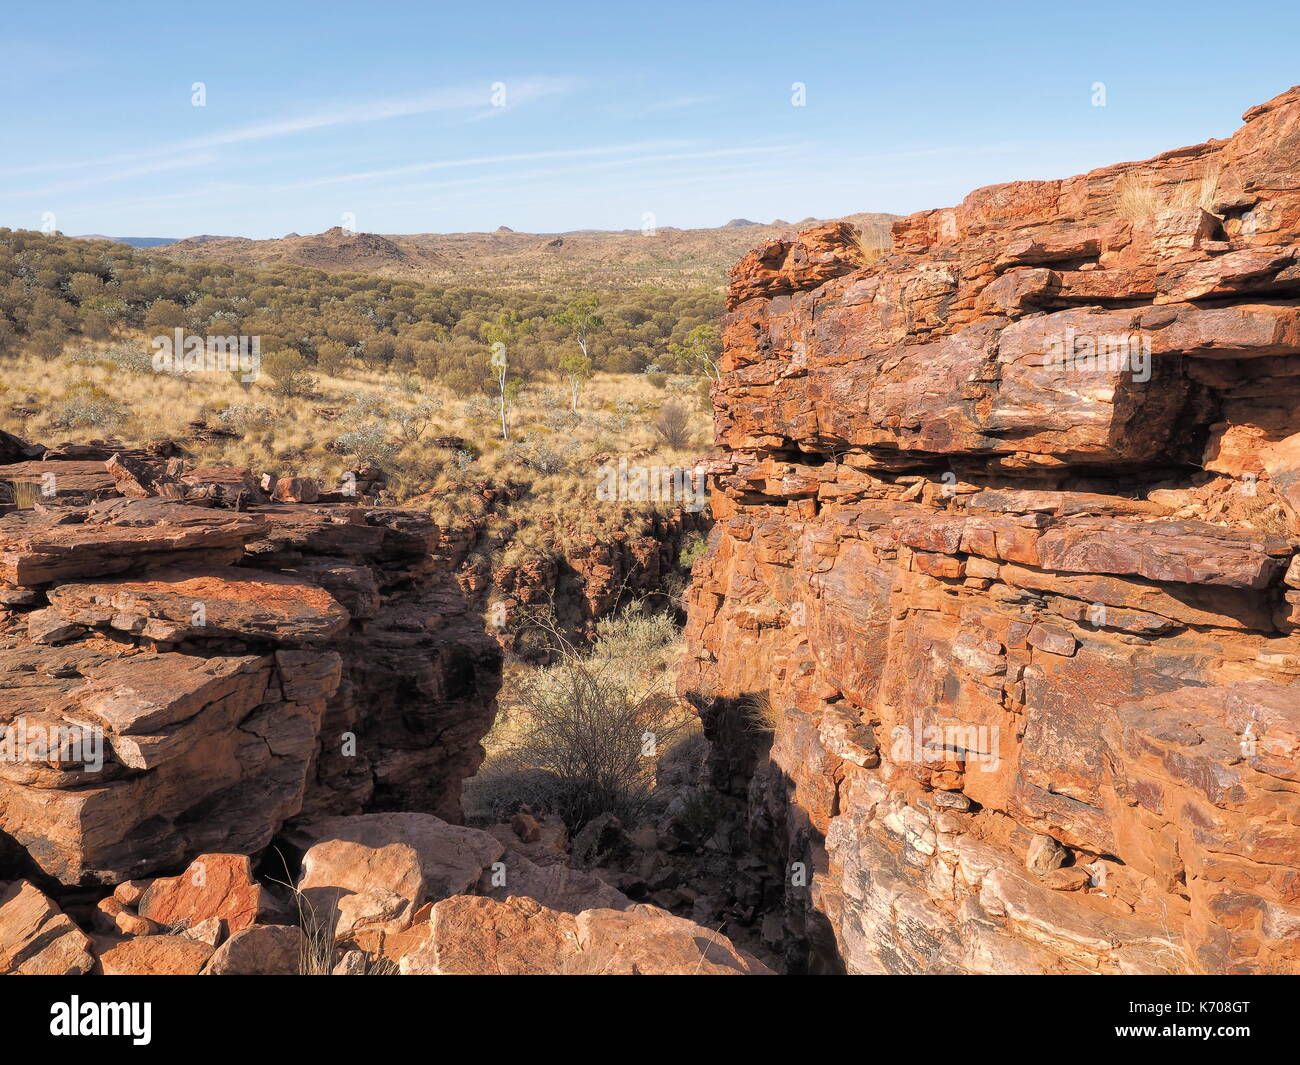 Trephina Gorge seen from the ridge, east MacDonnell ranges near Alice Springs, Northern Territory, Australia 2017 - Stock Image